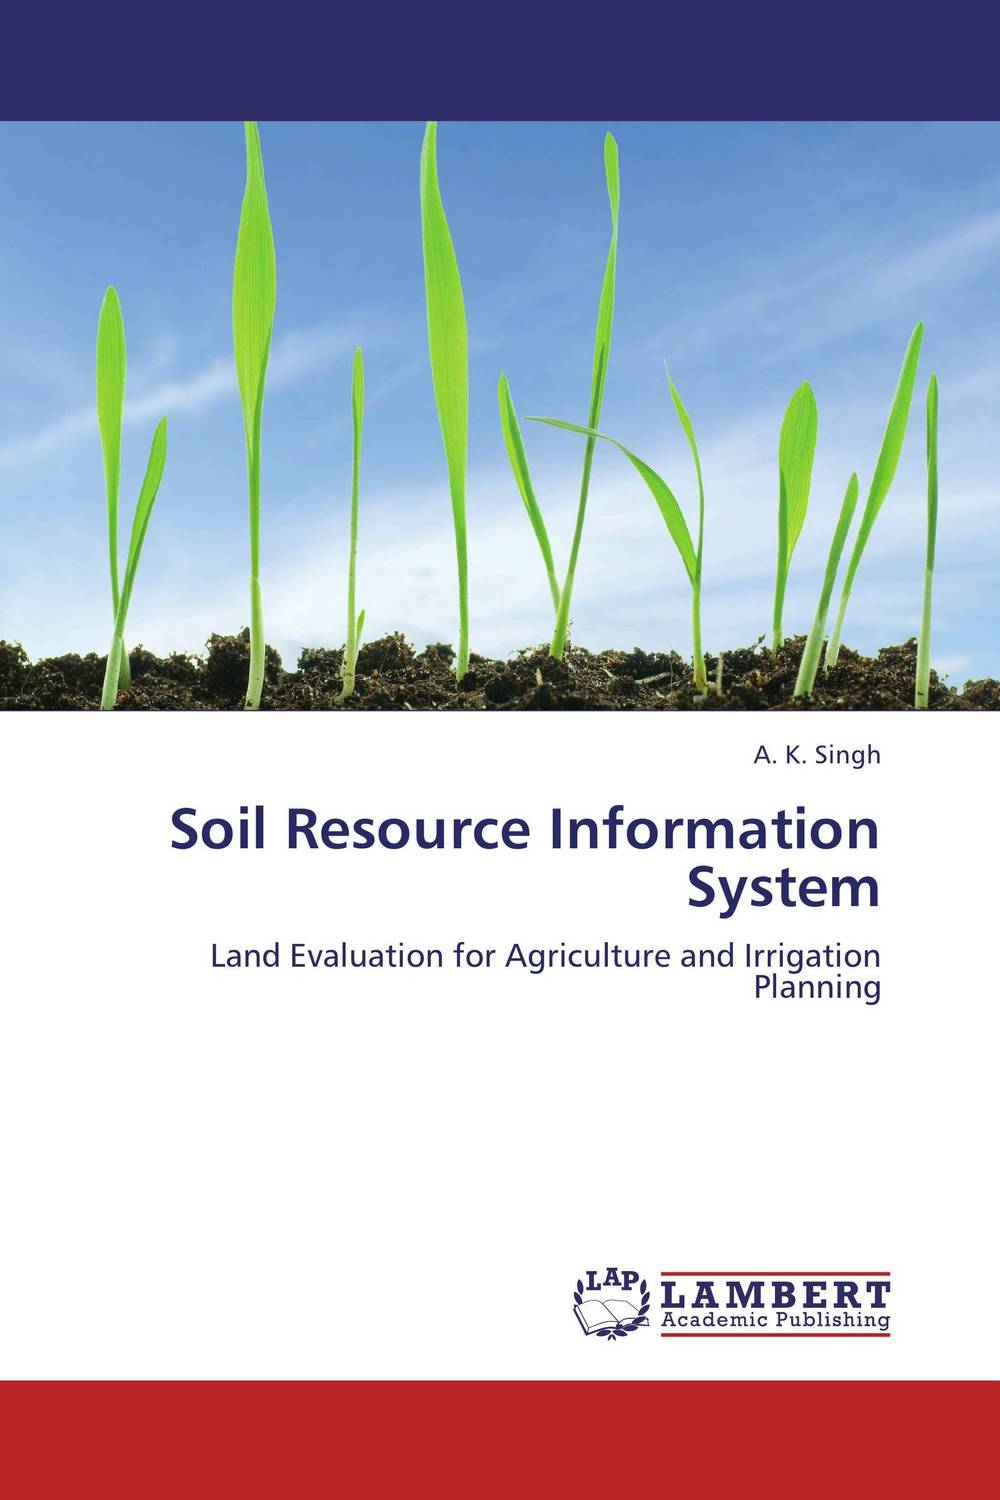 Soil Resource Information System soil and land resource evaluation for village level planning